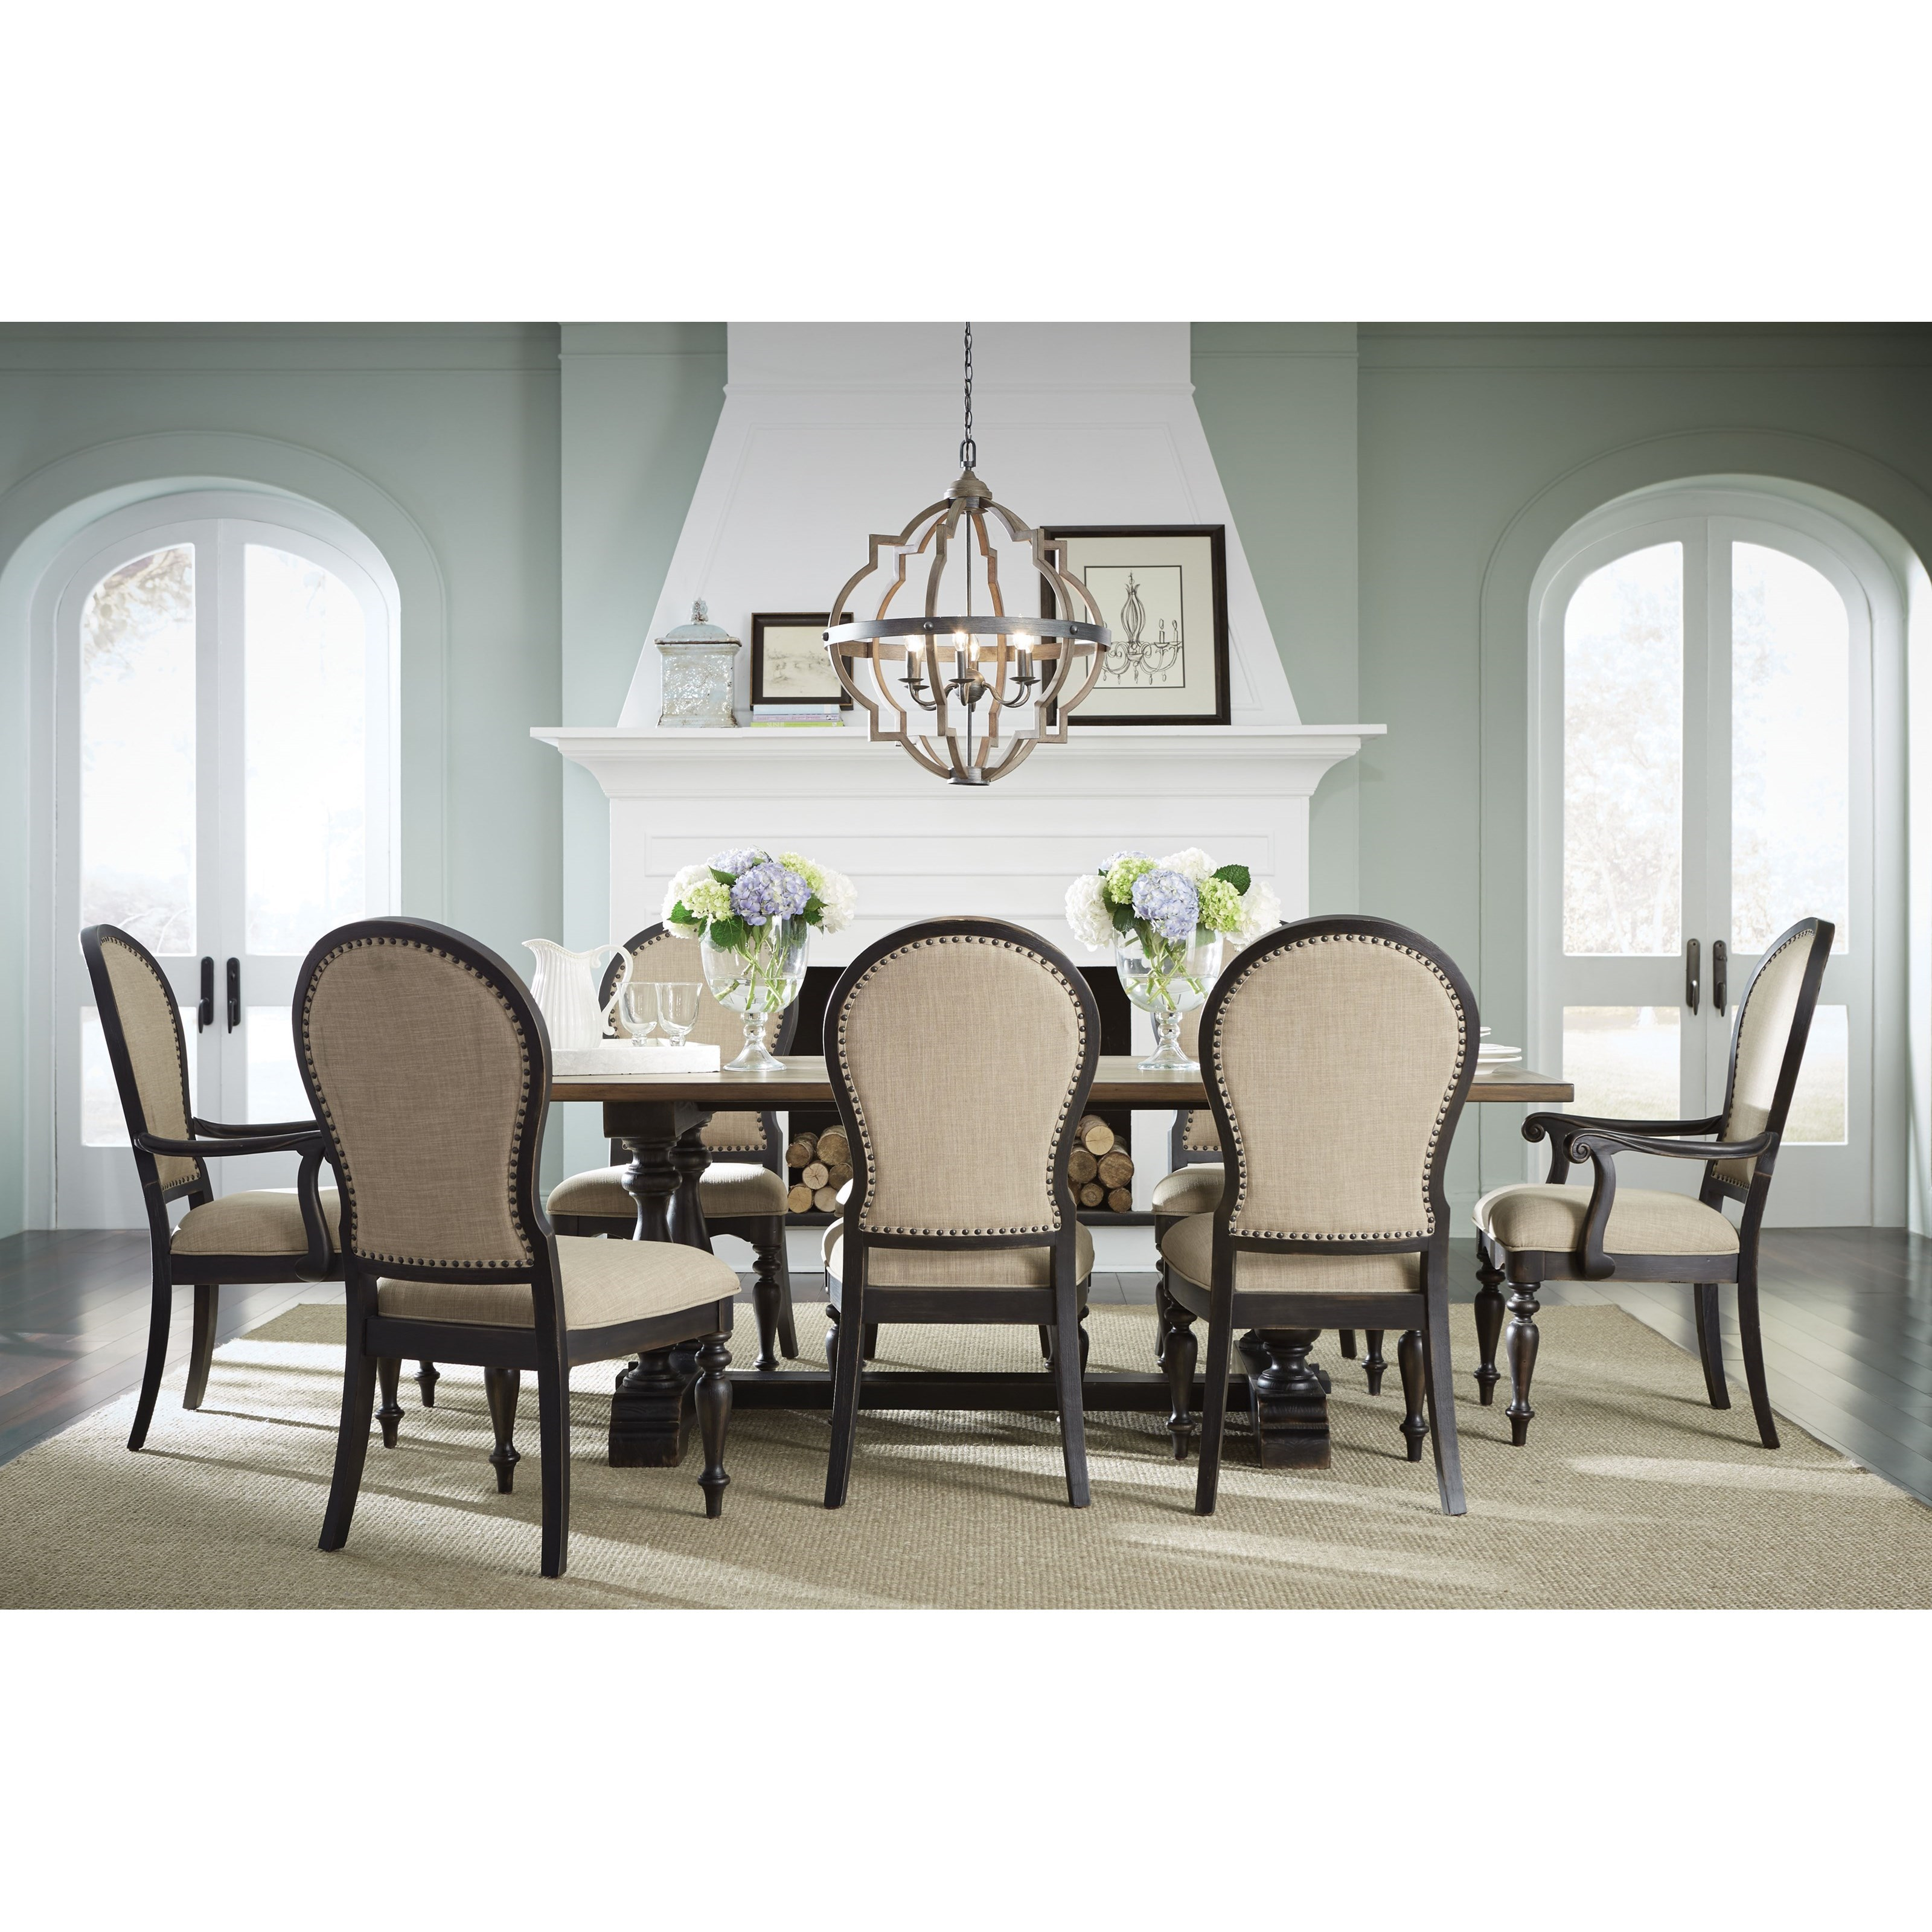 two tone kitchen table Dining Table